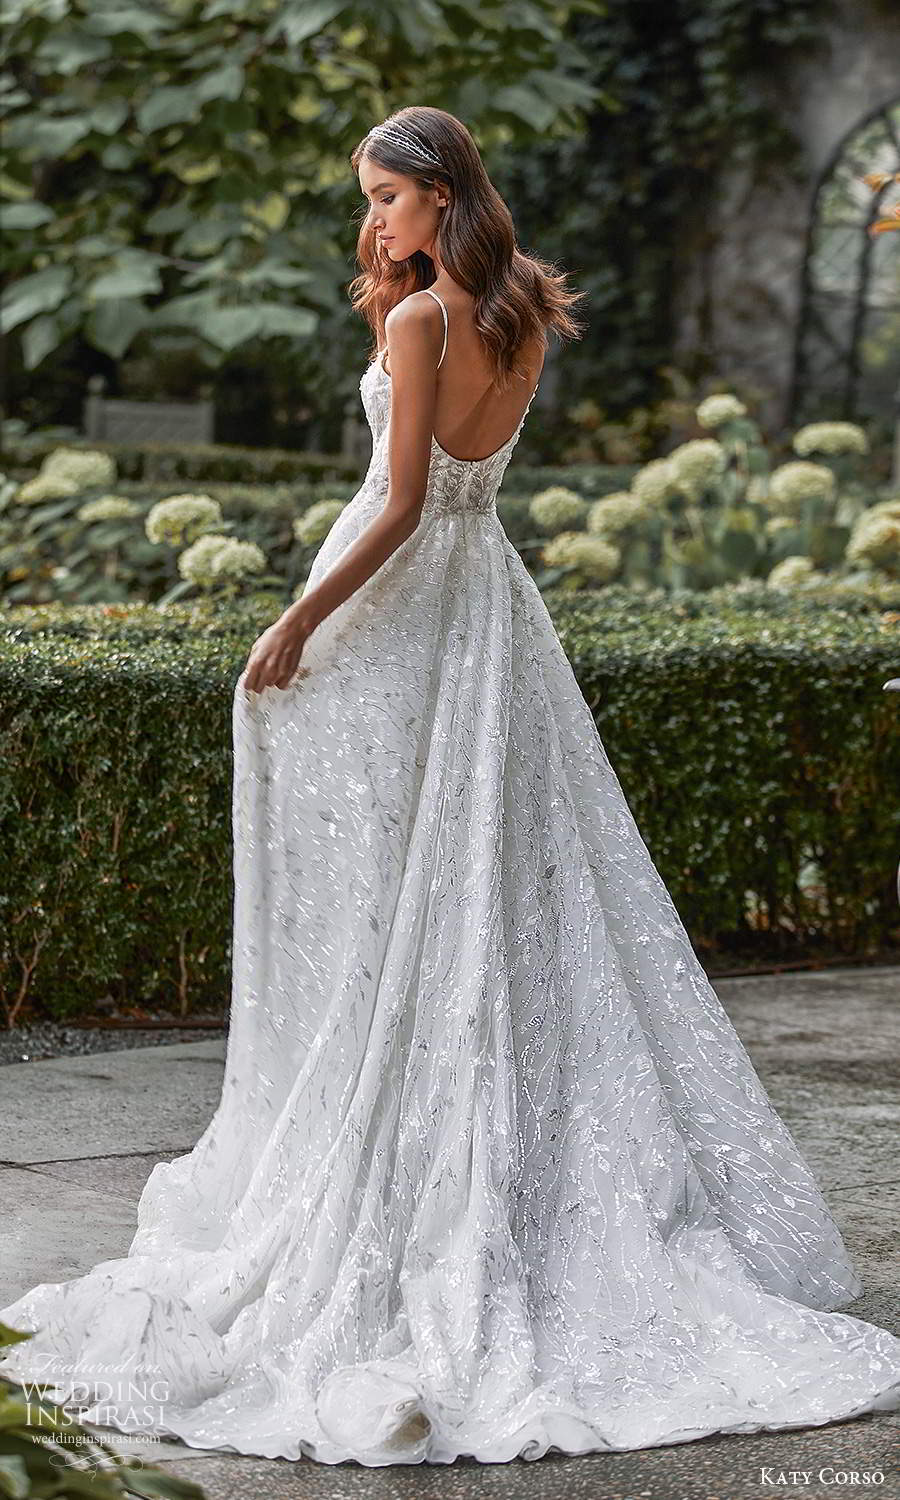 katy corso 2021 bridal sleeveless thin straps scoop neckline fully embellished a line ball gown wedding dress chapel train (9) bv